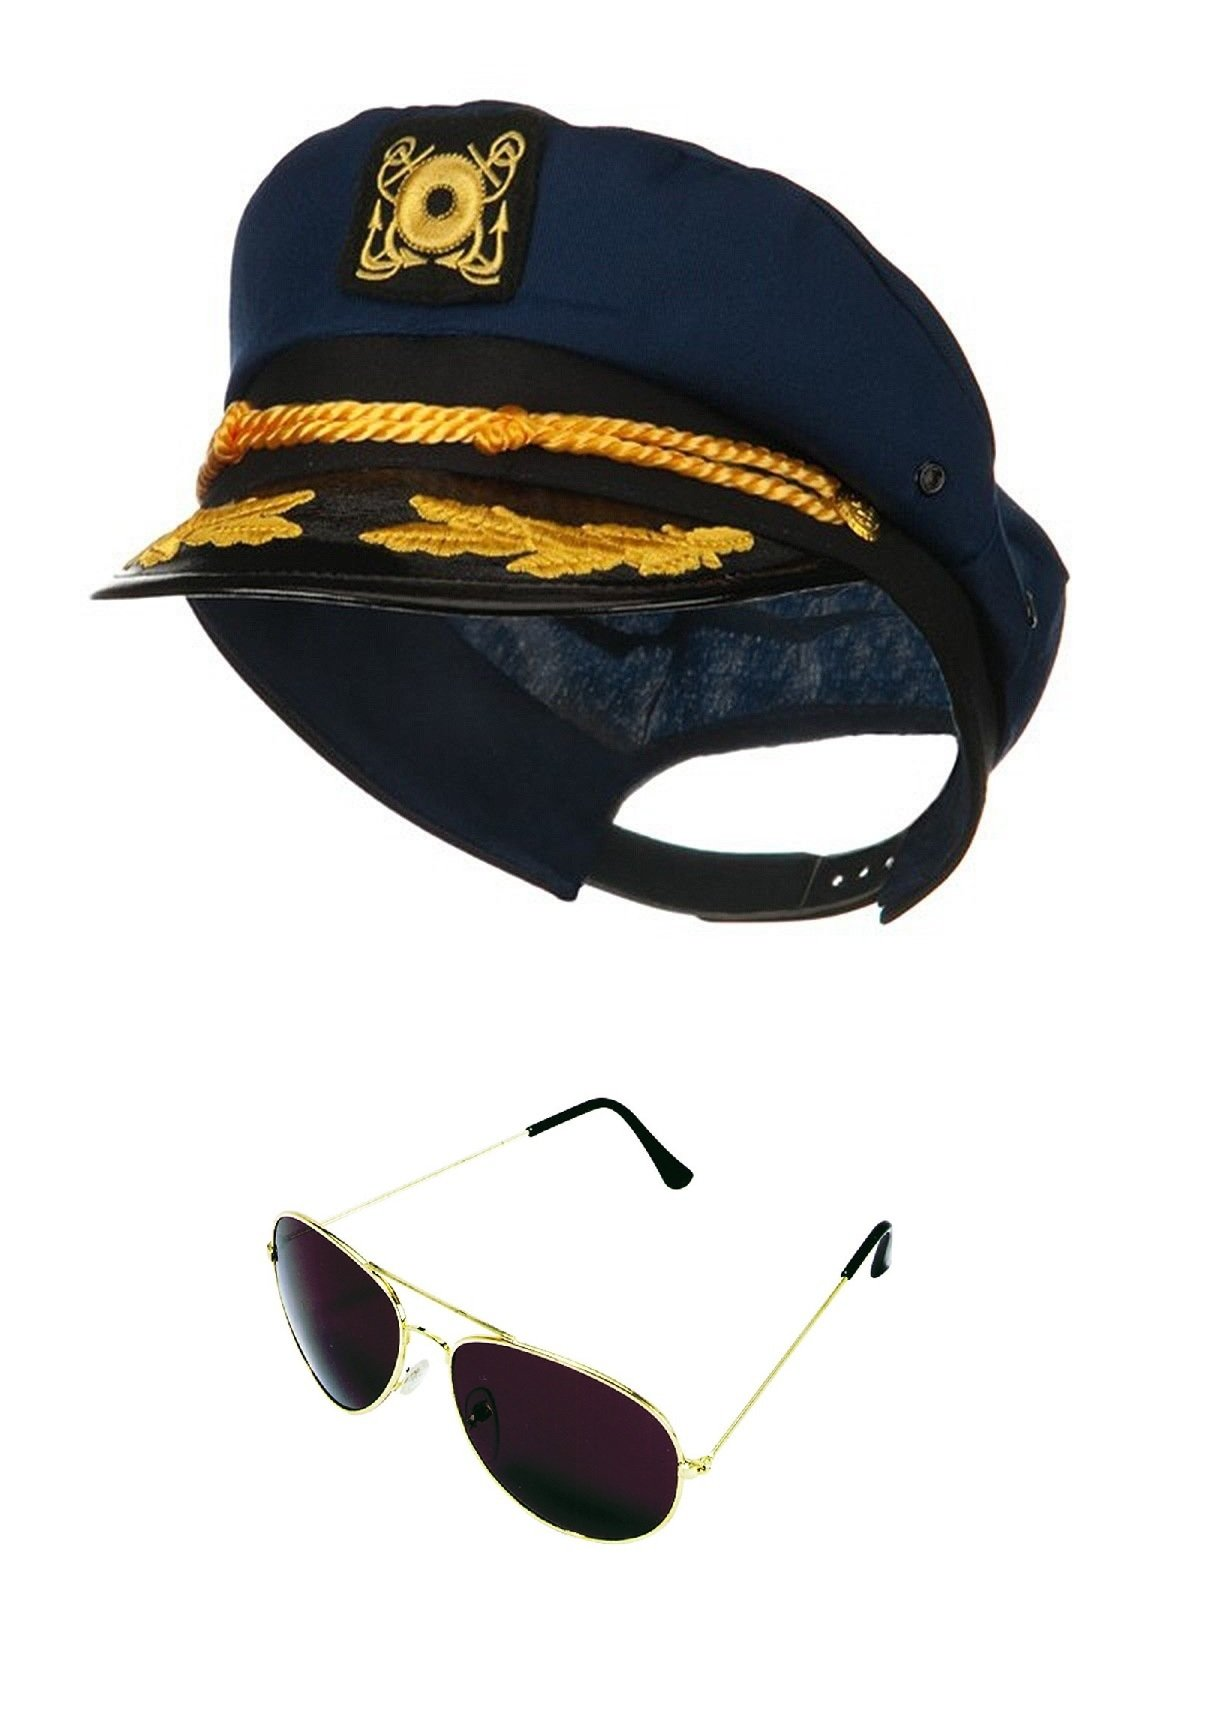 Yacht Skipper Boat Captain Hat Sailor Ship Cap Navy Blue Gold Aviator Sunglasses